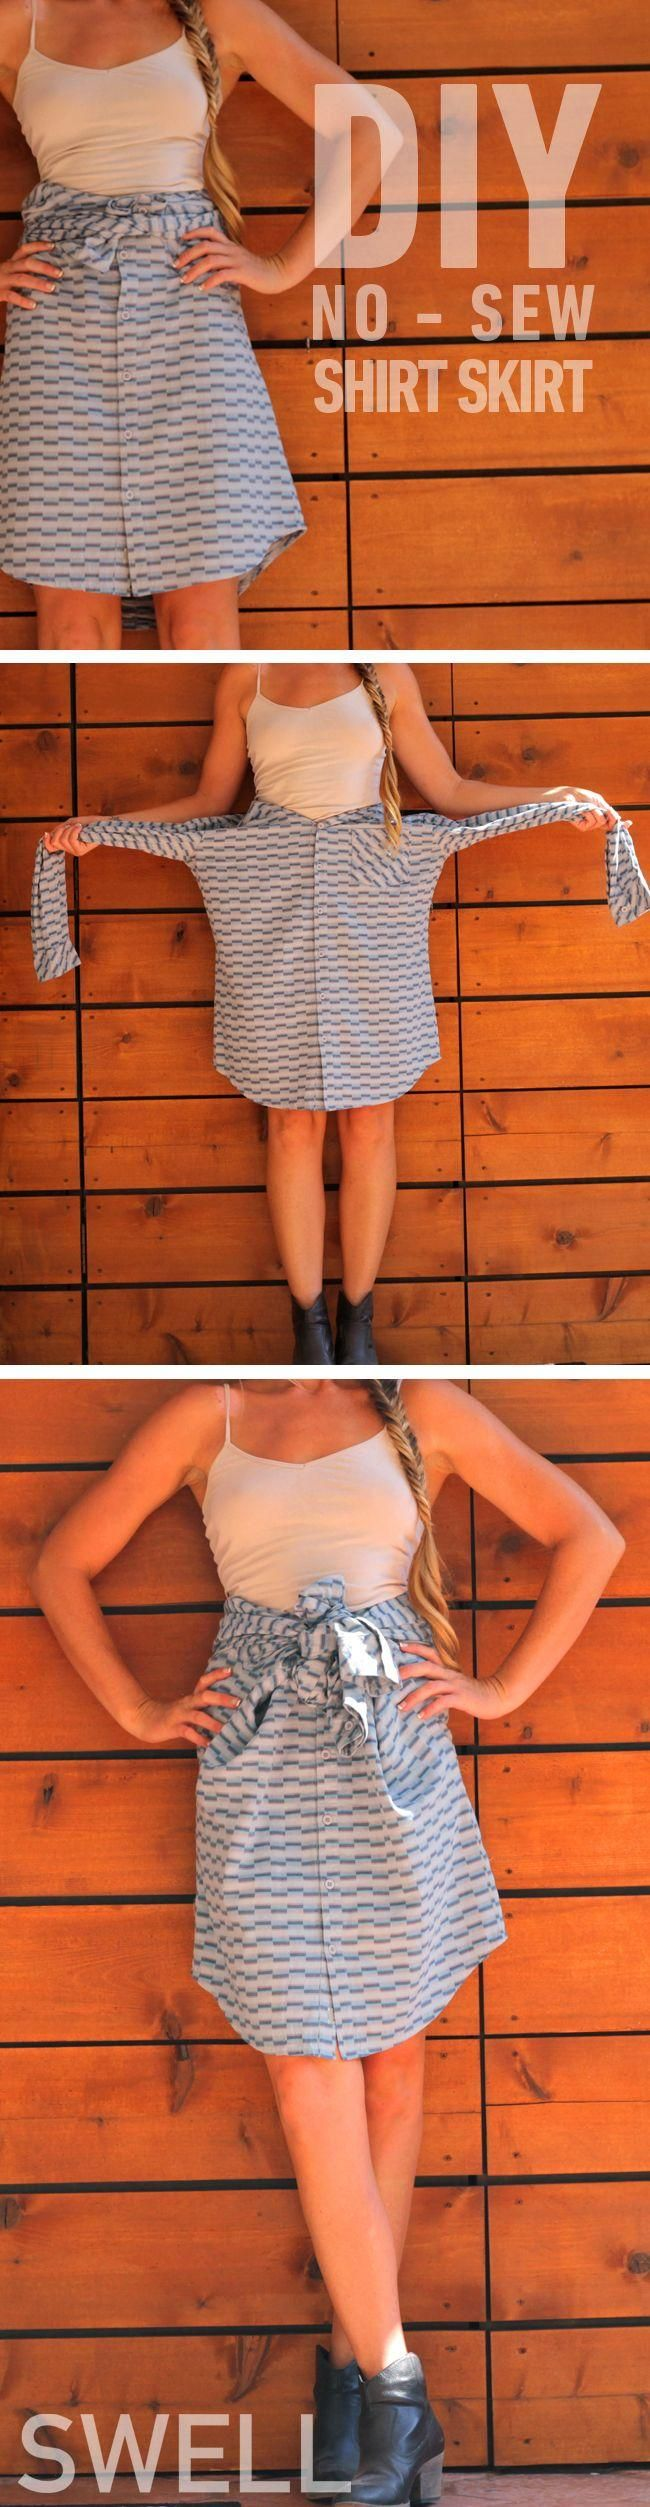 DIY No Sew Skirt from a Shirt